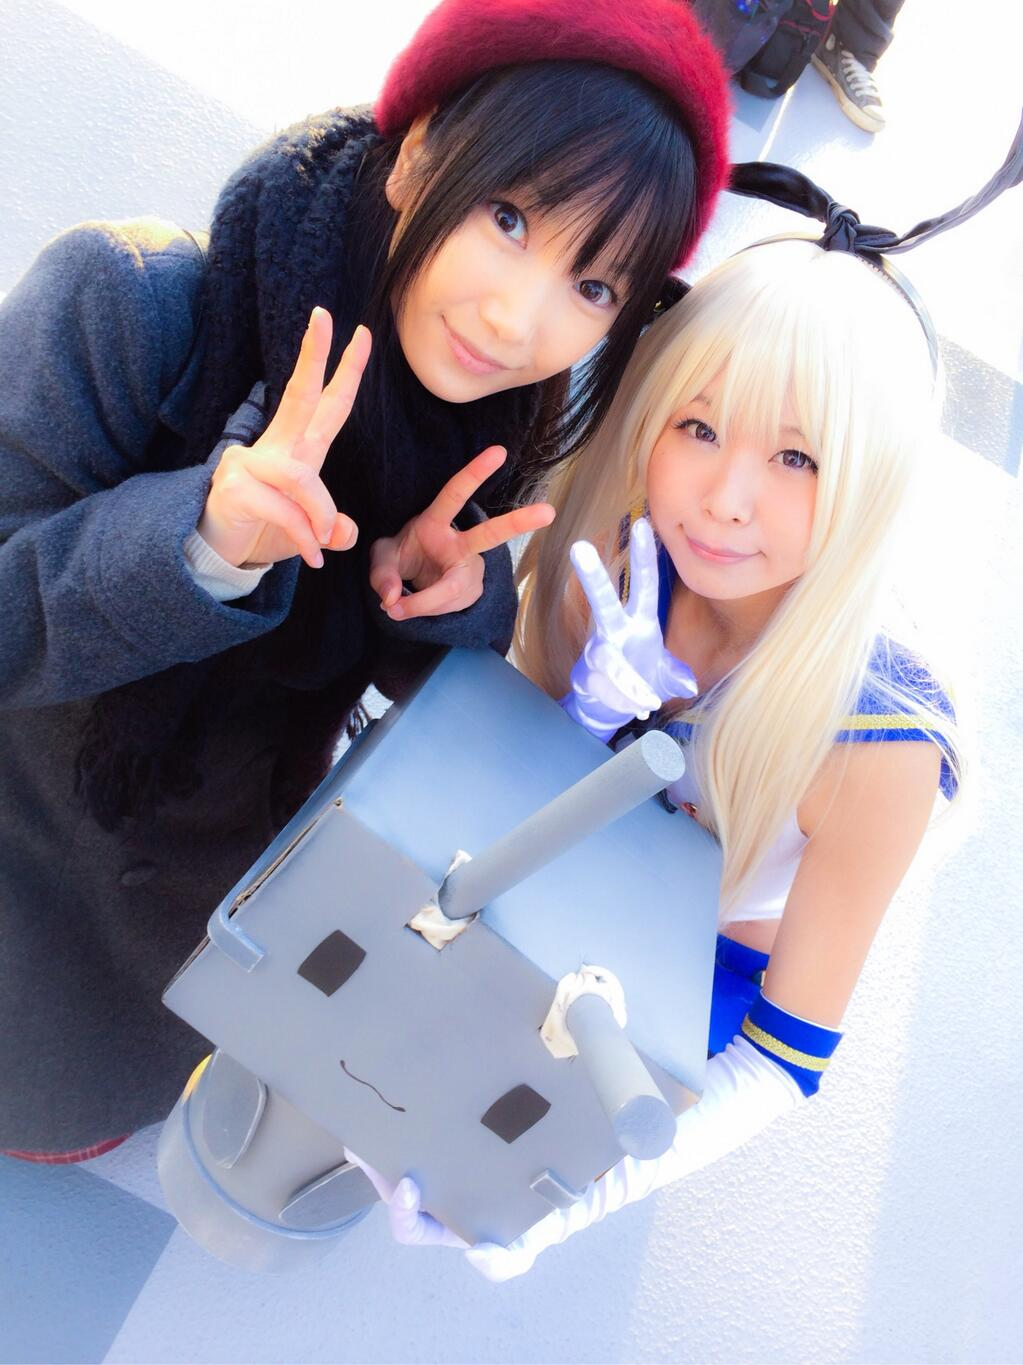 【C85】Comiket 85 WINTER 2013 - DAY 2 COSPLAY (36)